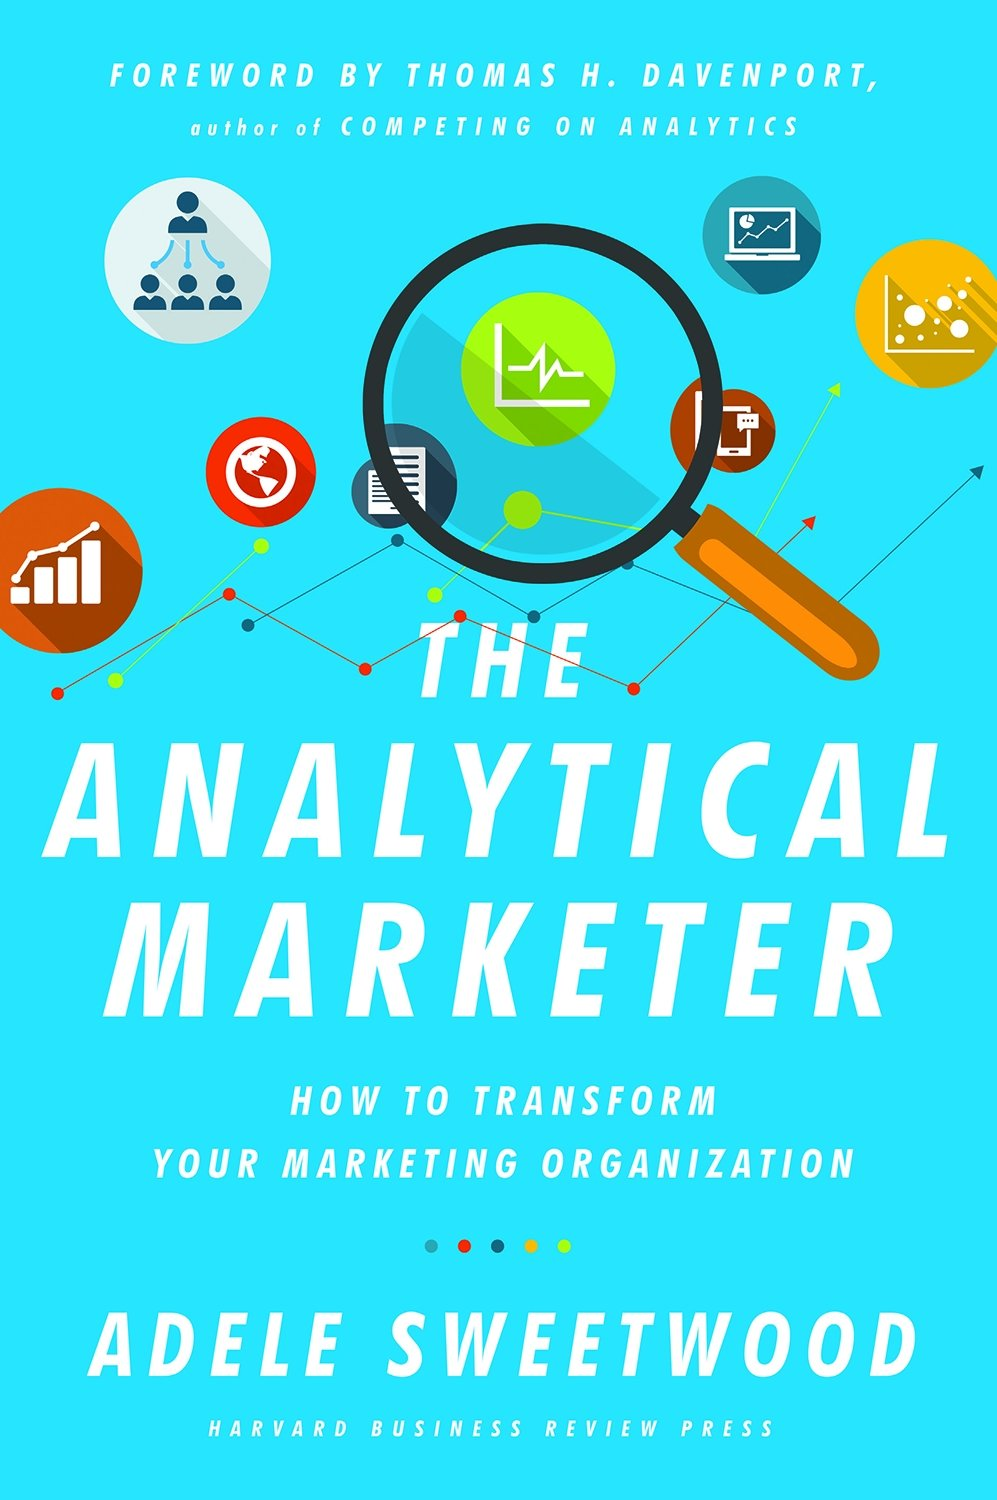 The Analytical Marketer: How to Transform Your Marketing Organization PDF